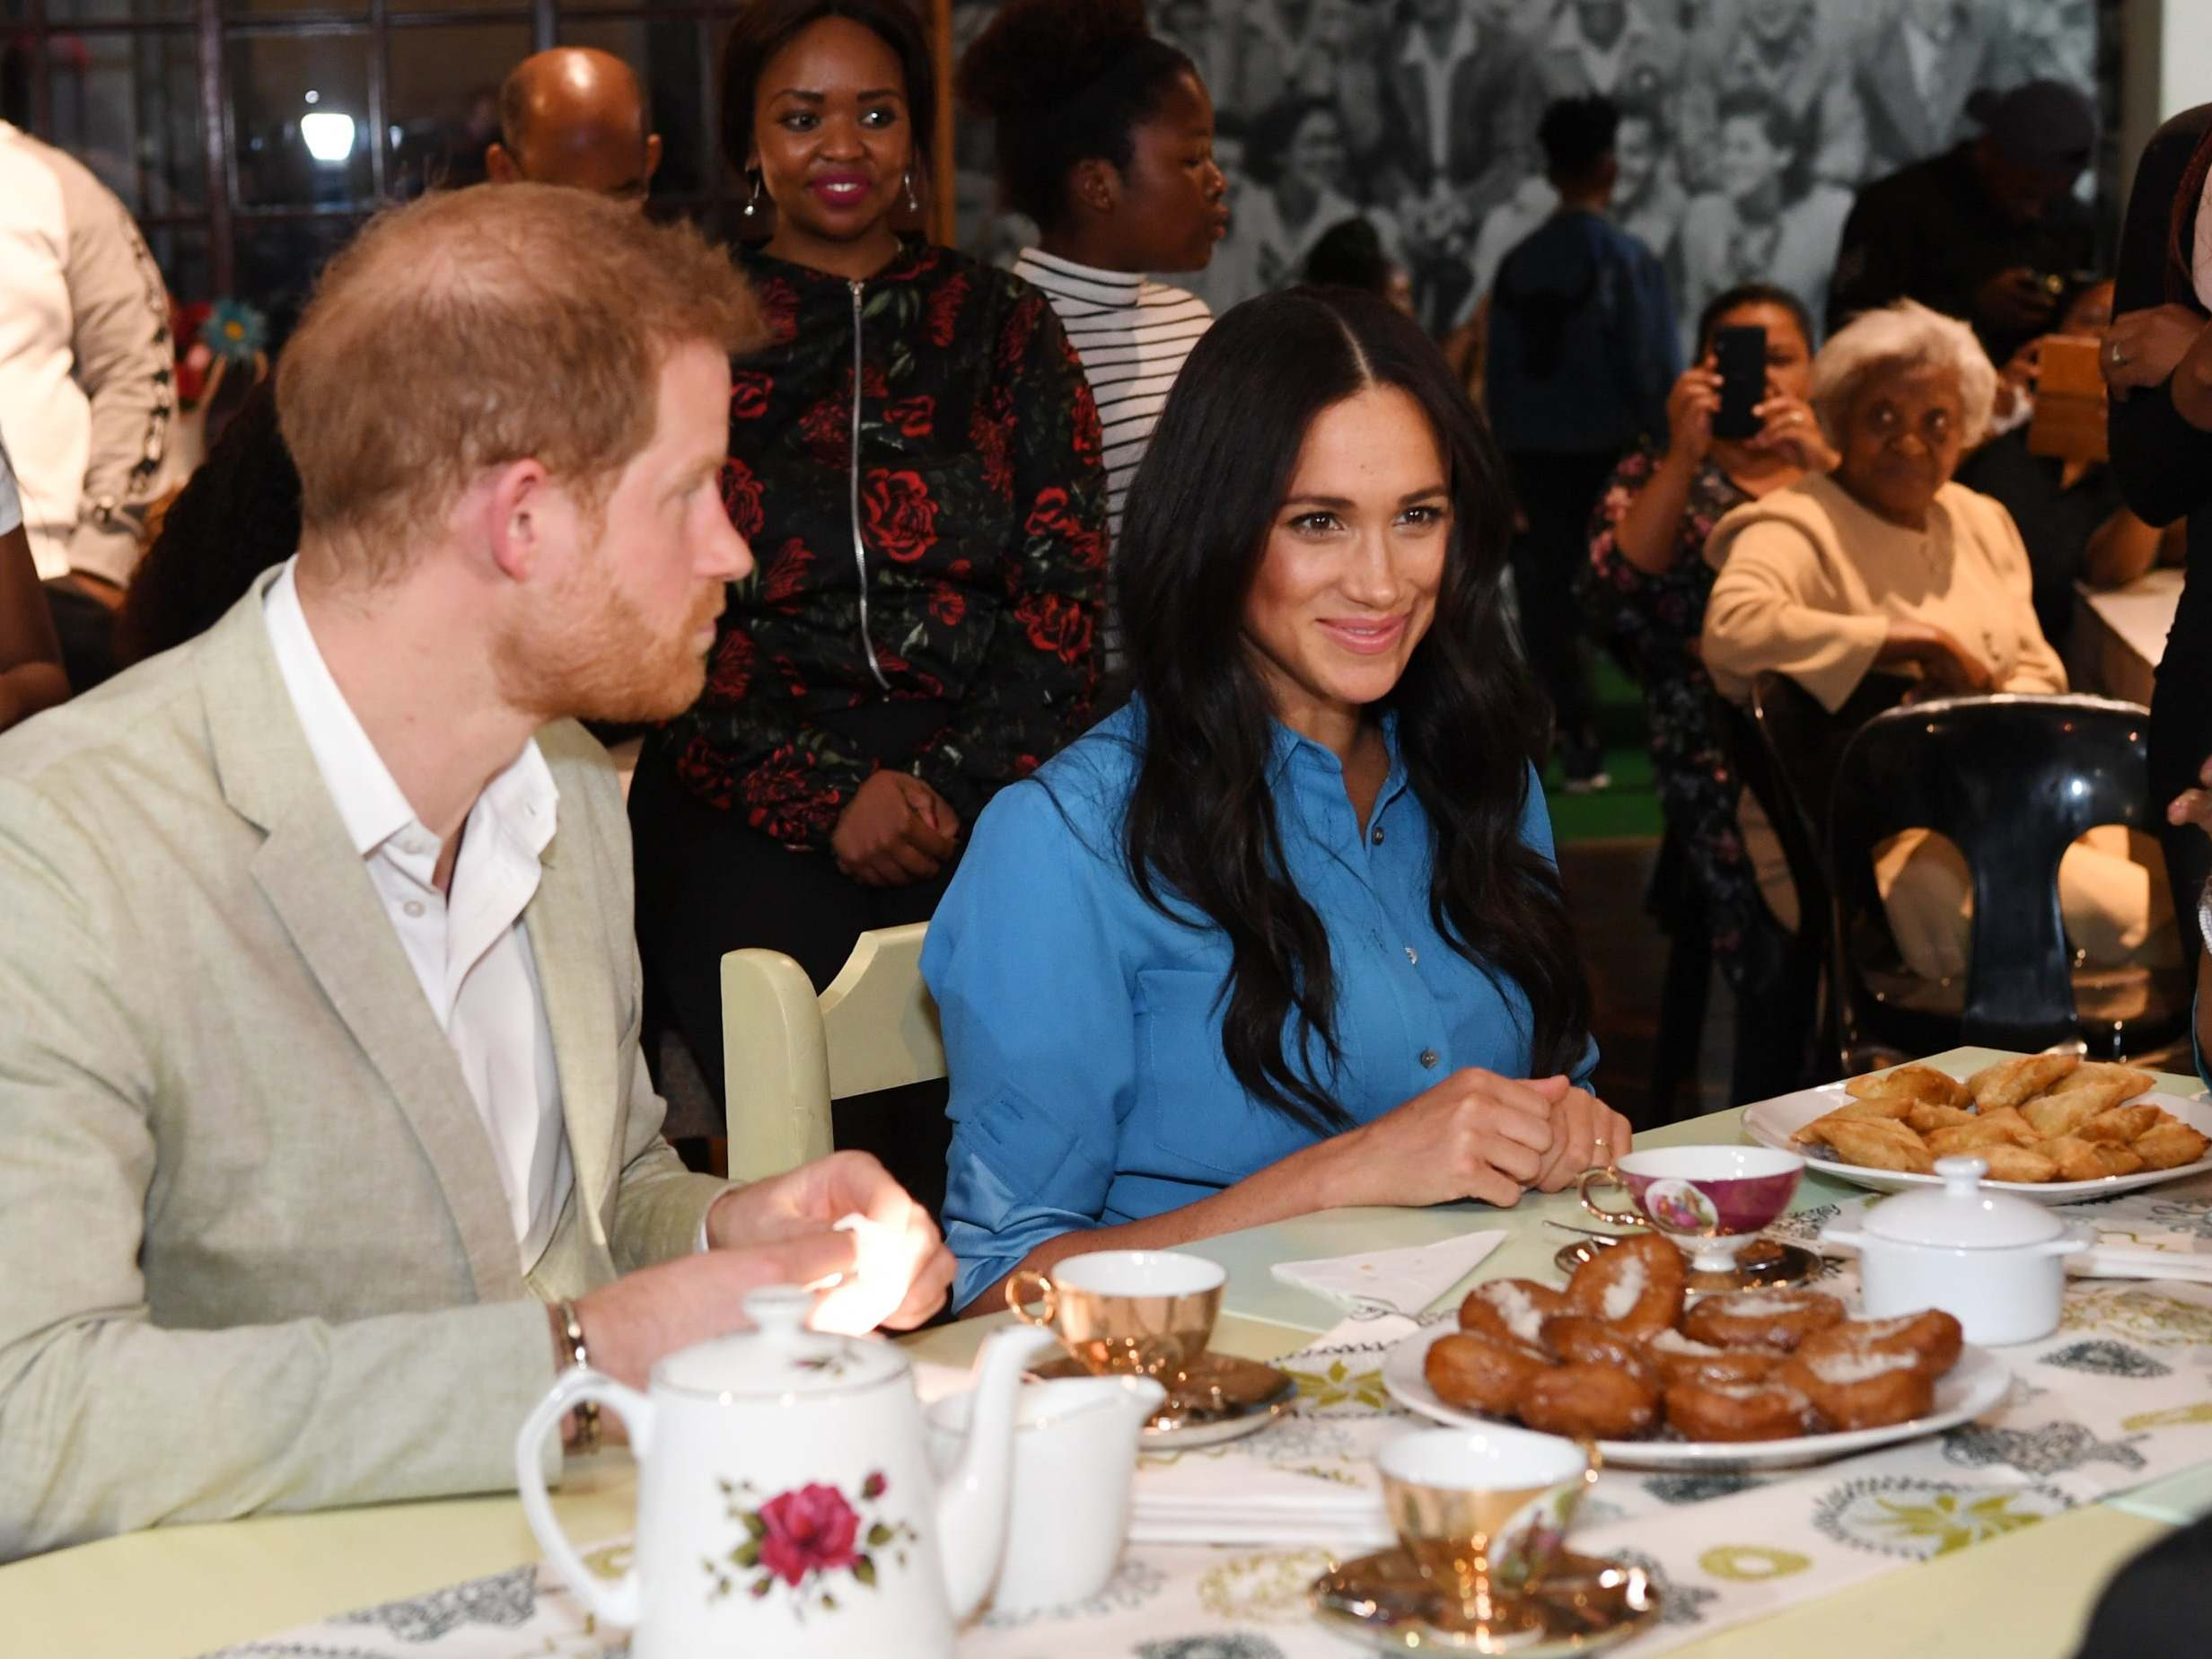 Royal tour: Meghan Markle and Prince Harry highlight 'importance of cooking' while tasting local cuisine in Cape Town 1